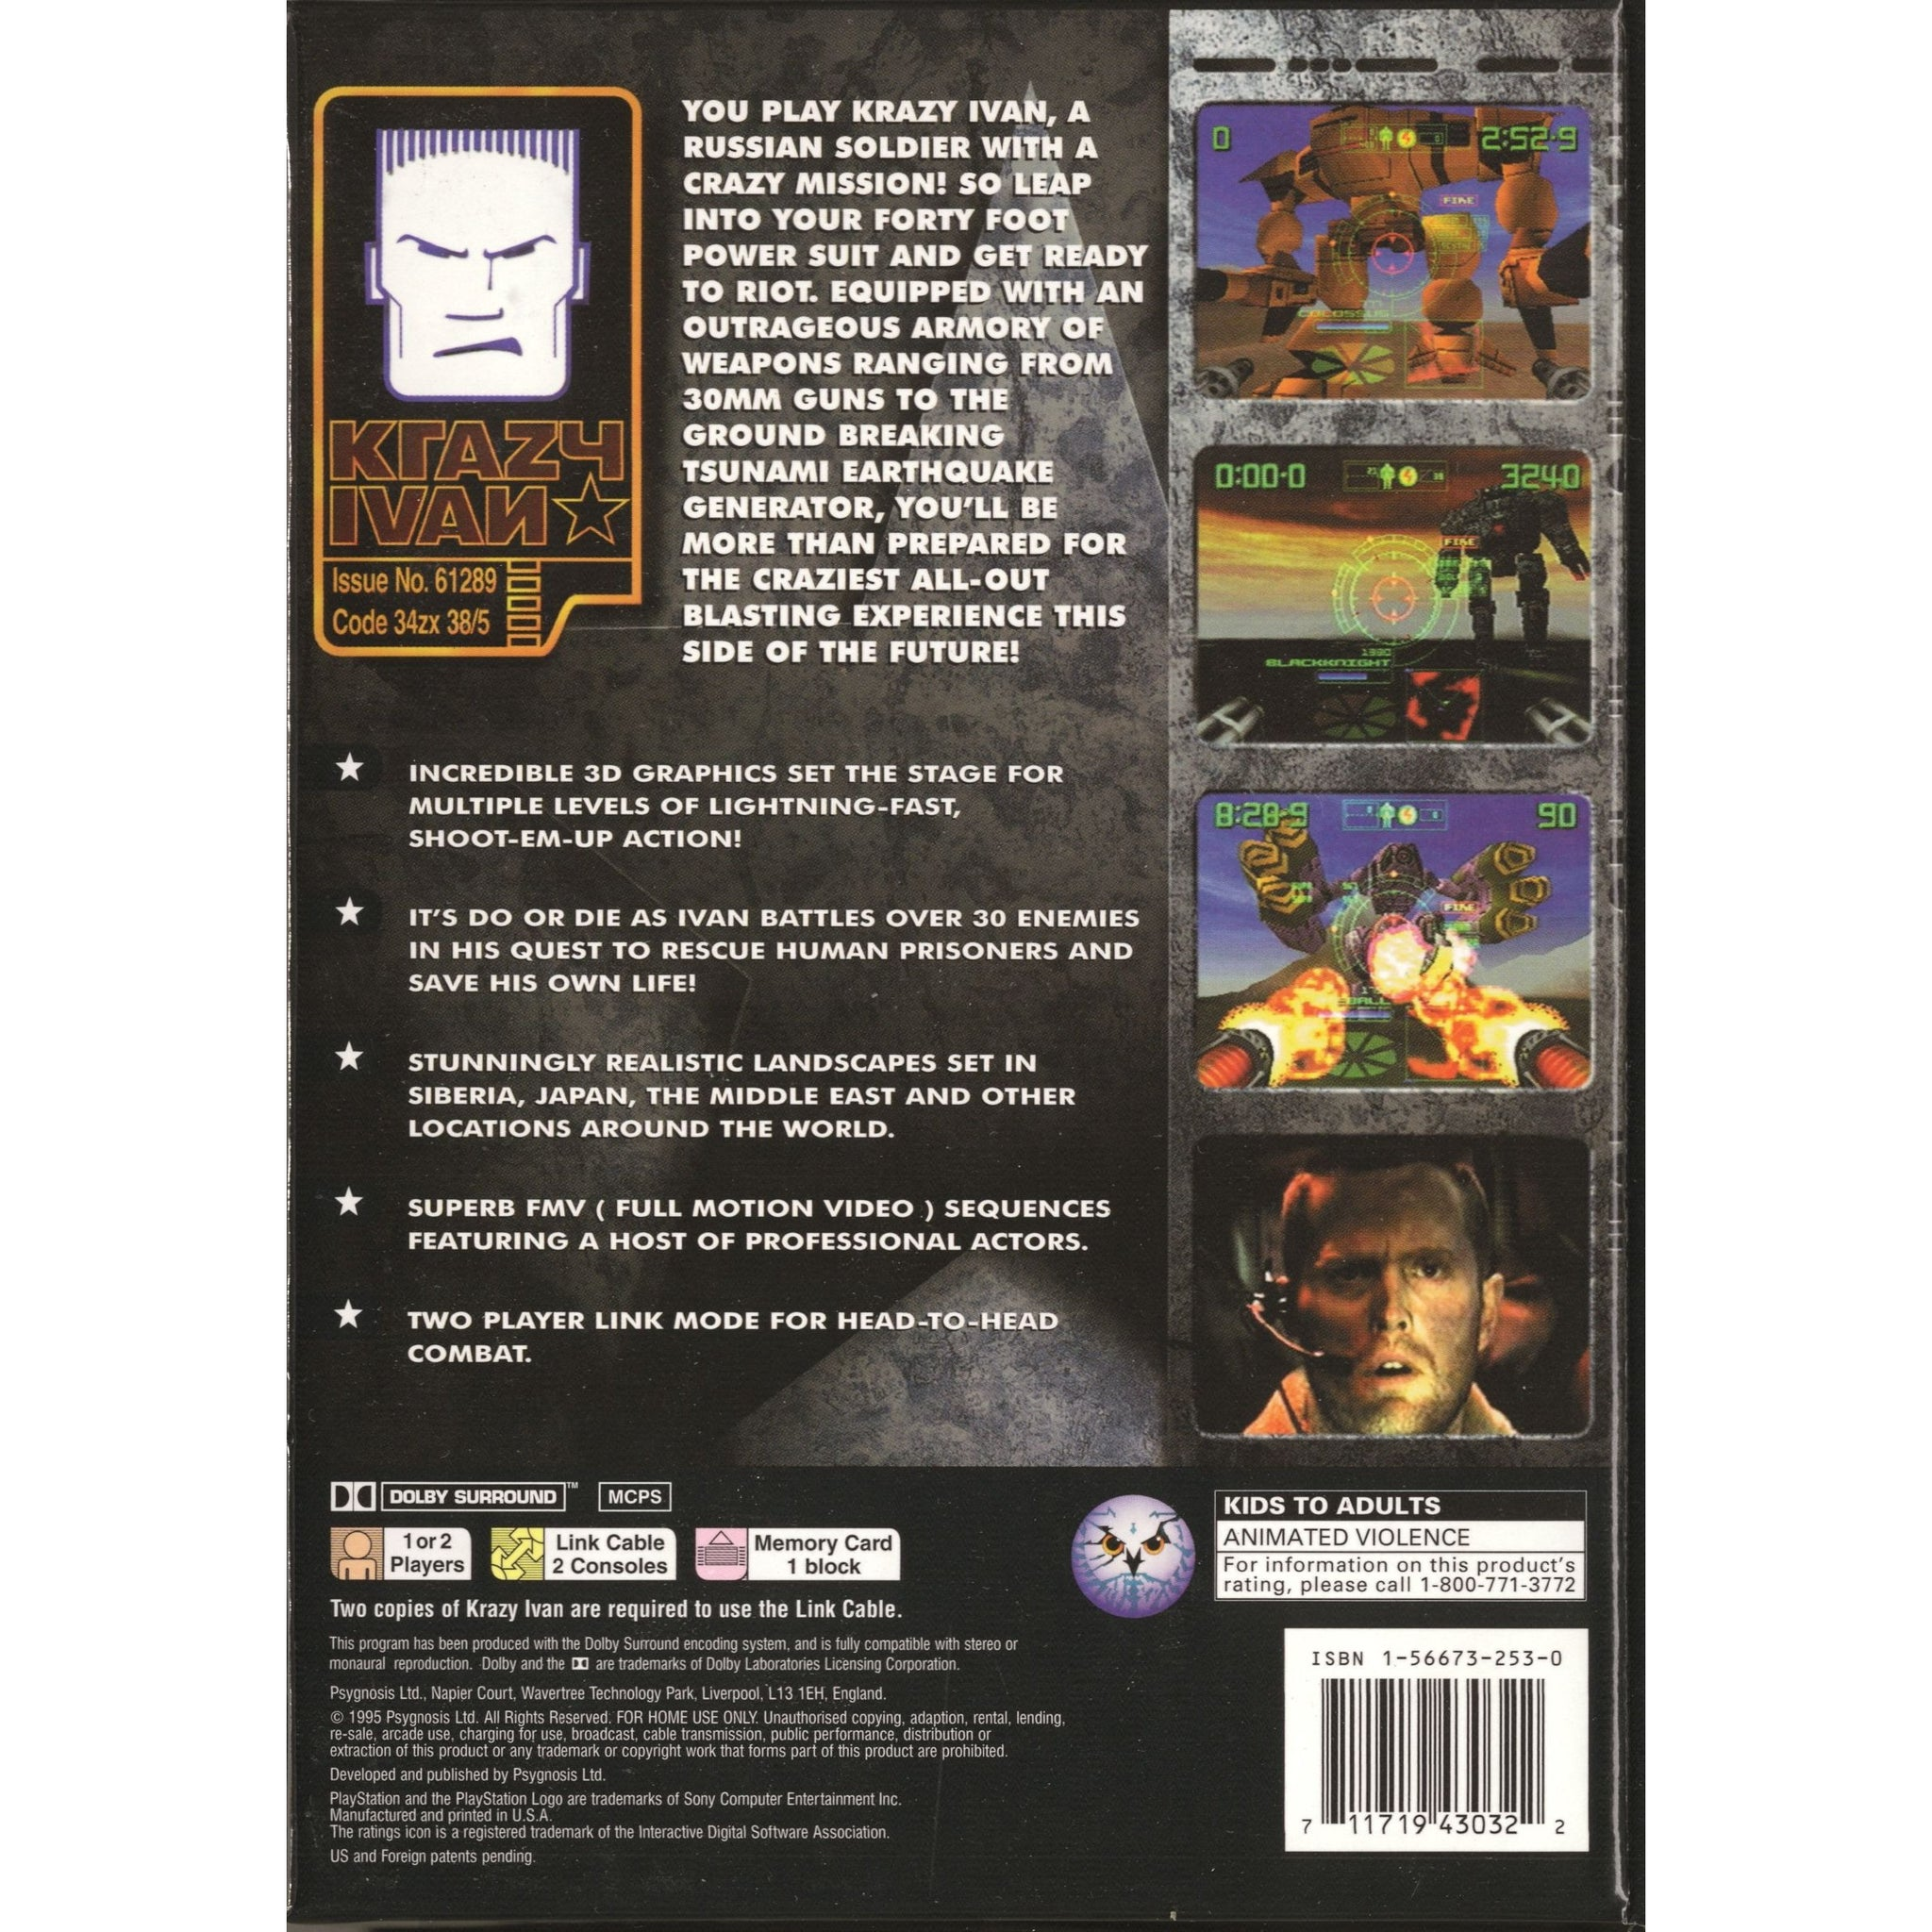 Krazy Ivan (Long Box) - PlayStation 1 (PS1) Game Complete - YourGamingShop.com - Buy, Sell, Trade Video Games Online. 120 Day Warranty. Satisfaction Guaranteed.